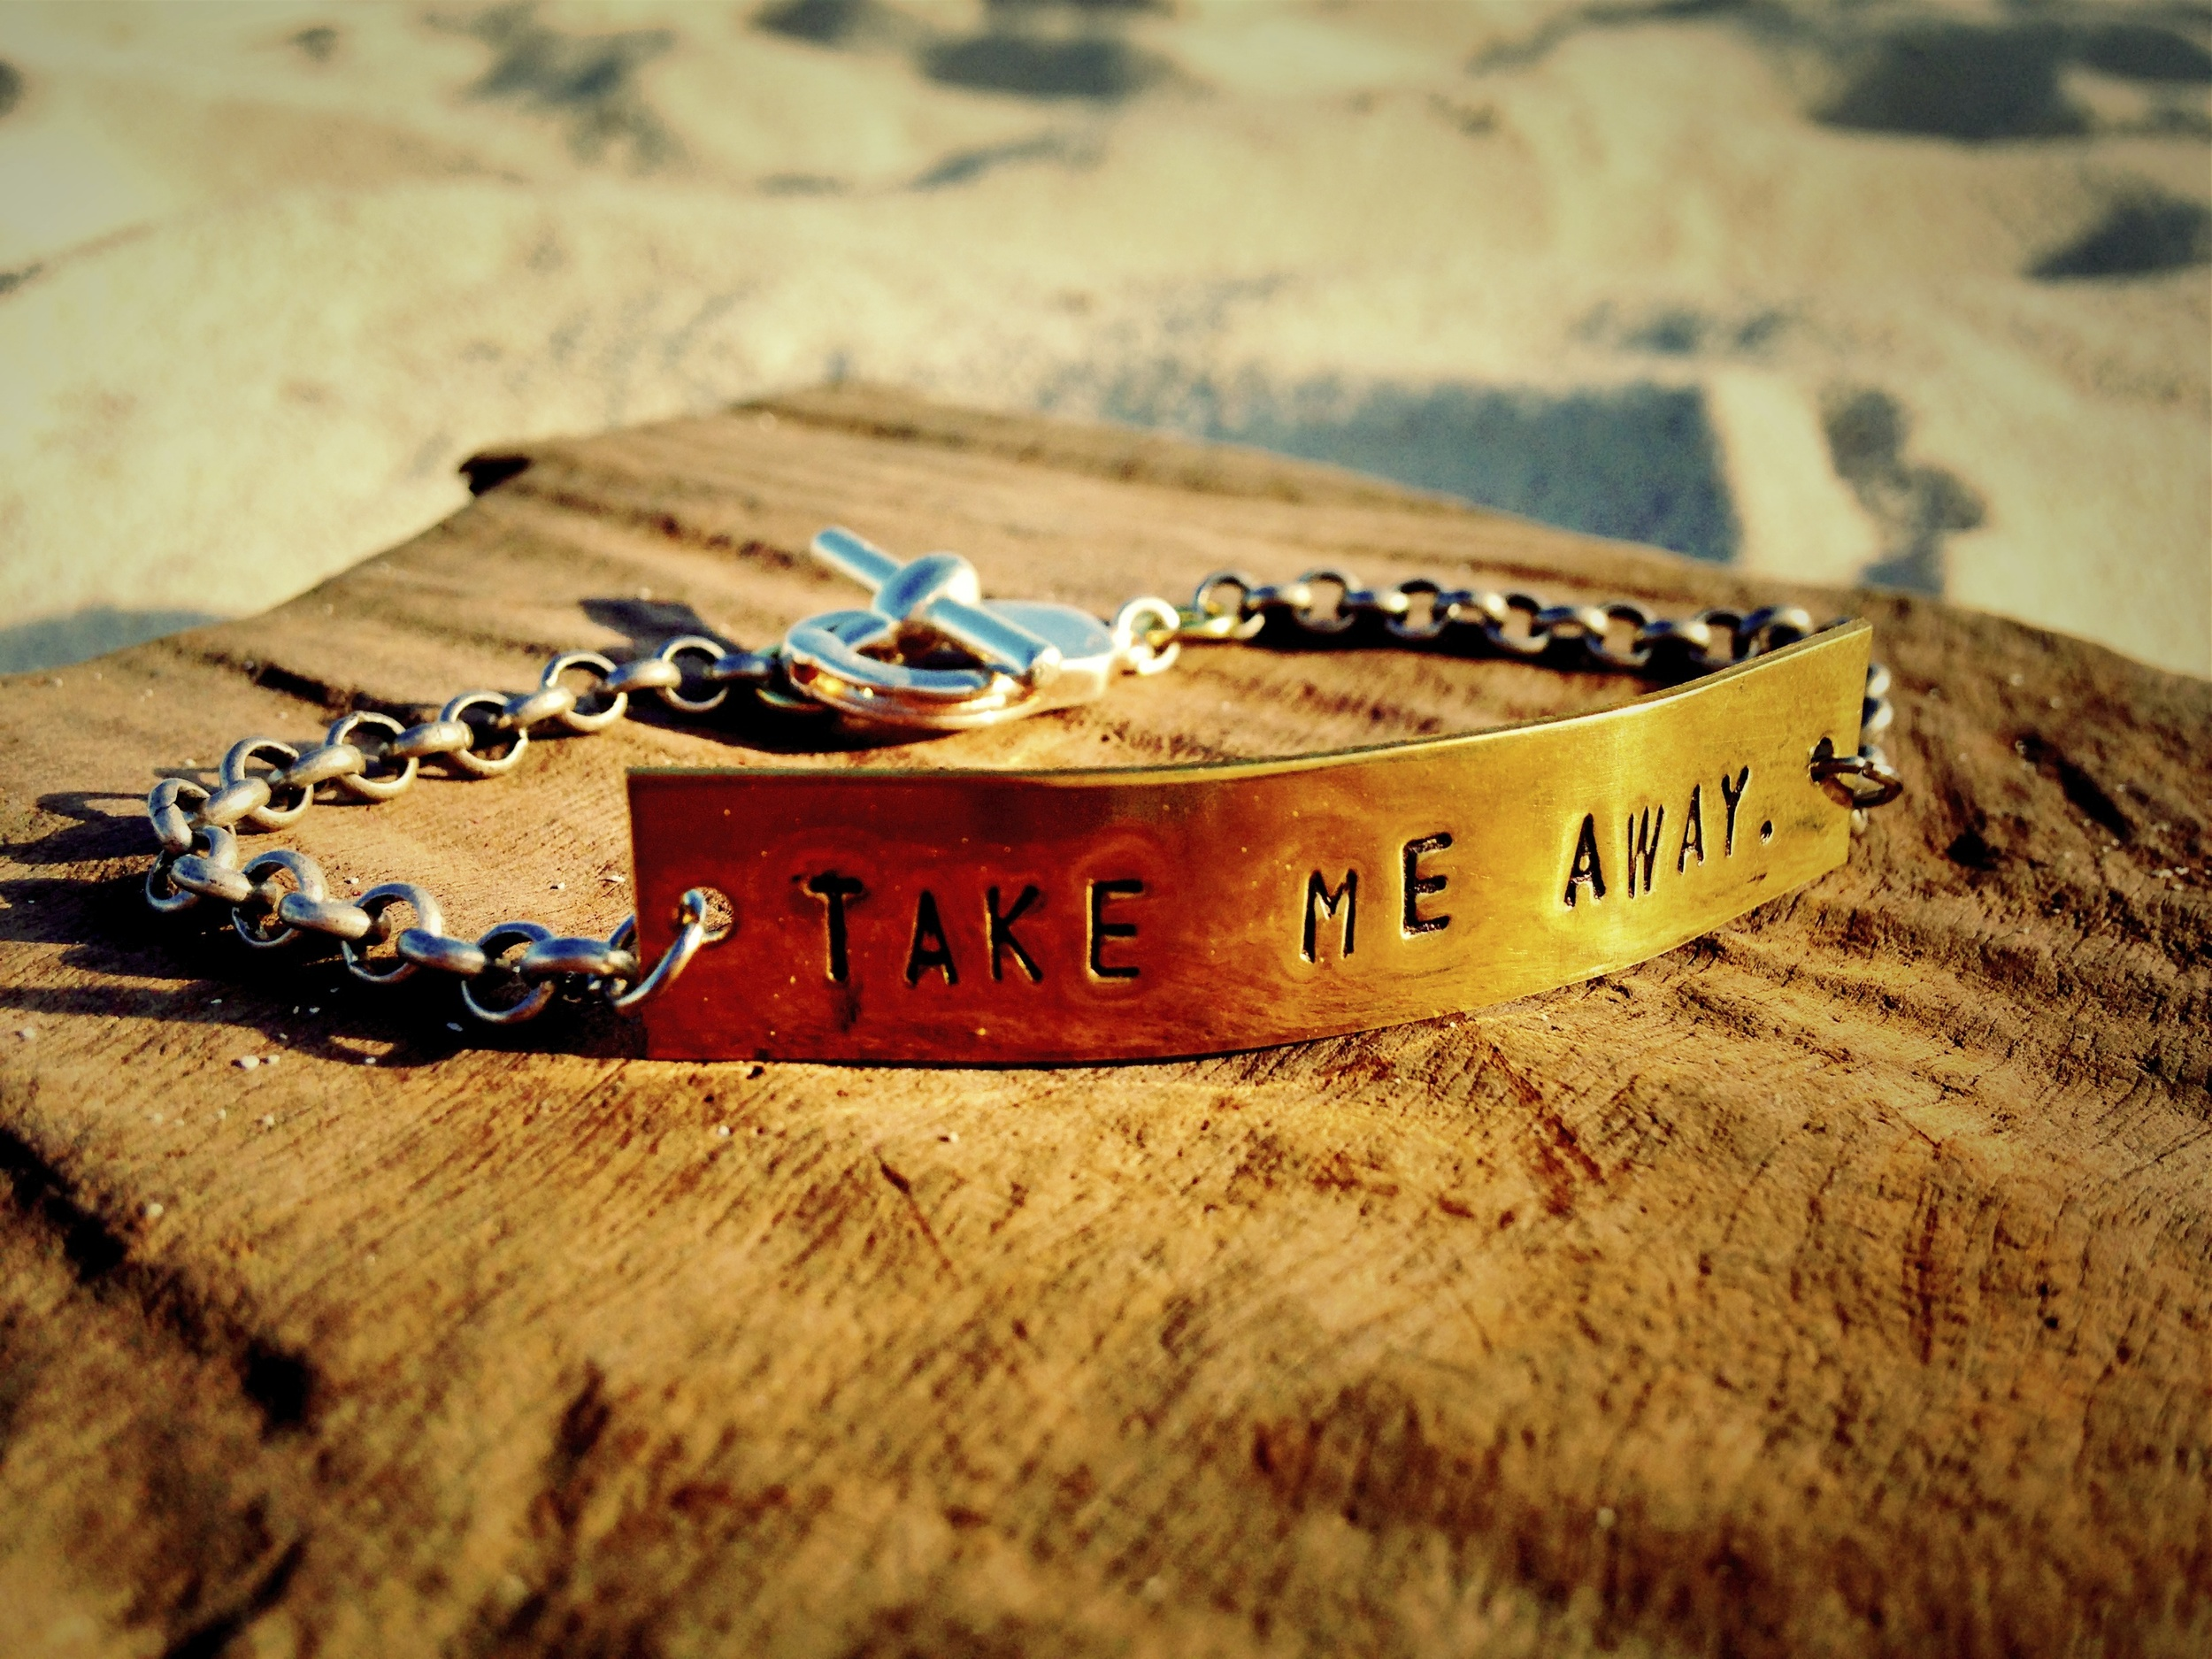 TAKE ME AWAY (handcuff closure).jpg